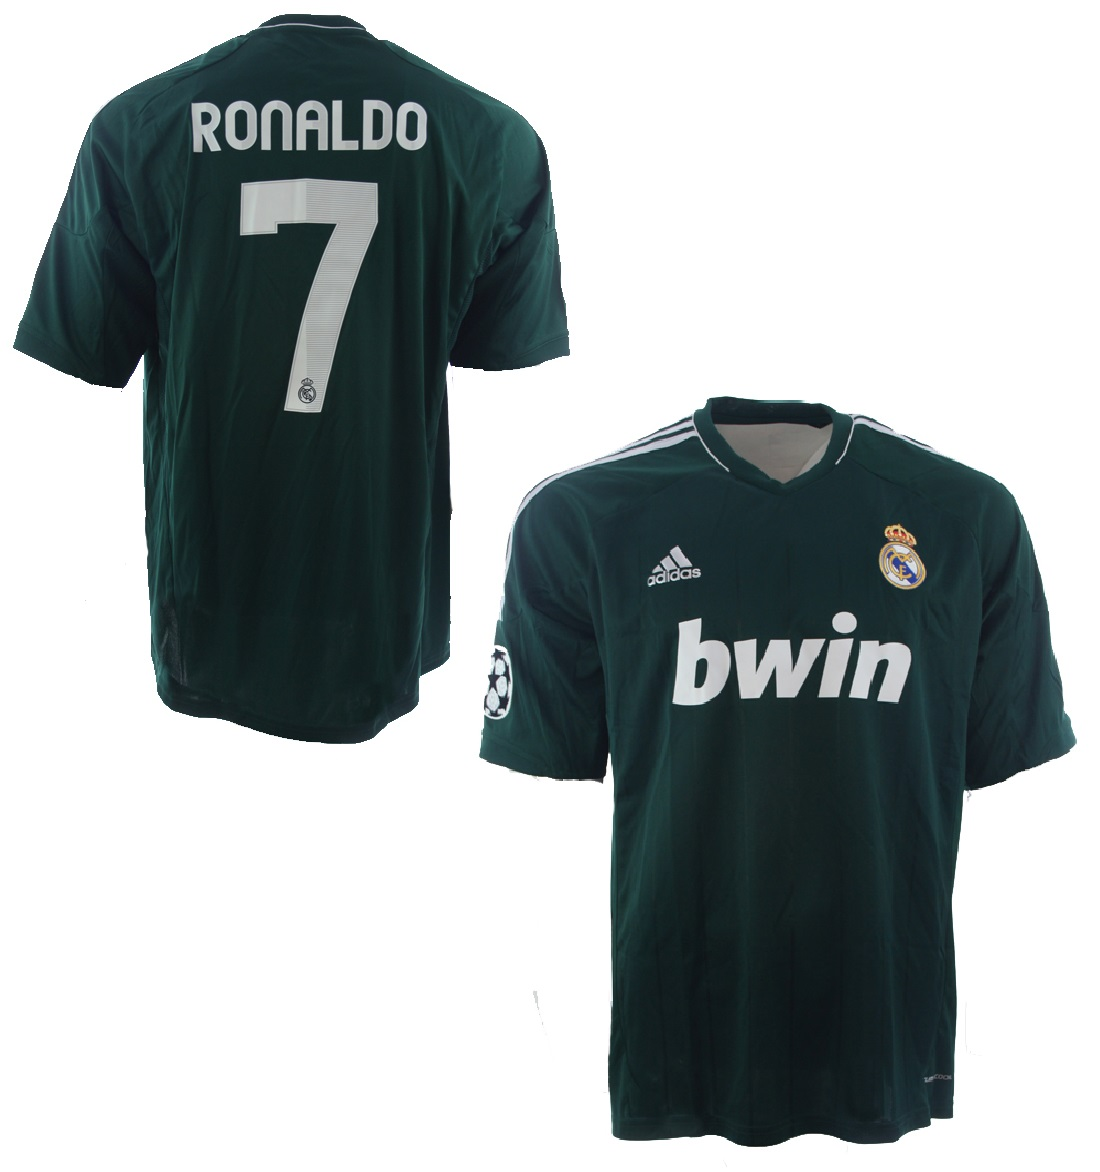 99b12dd88 Adidas Real Madrid jersey 7 Cristiano Ronaldo 2012 13 new bwin away men s M  or